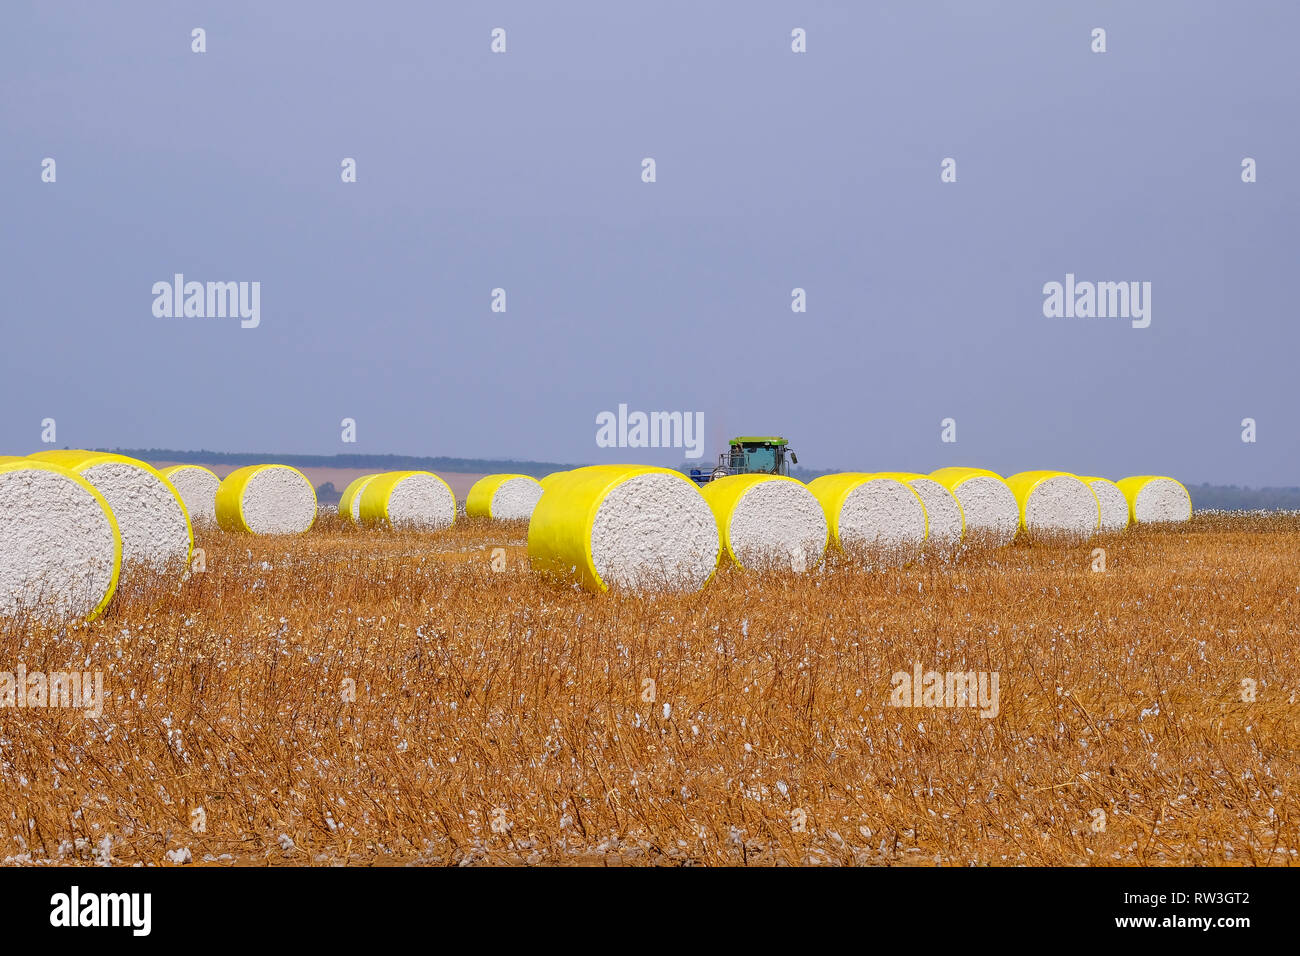 Round bales of freshly harvested cotton wrapped in yellow plastic, in the field in Campo Verde, Mato Grosso, Brazil - Stock Image